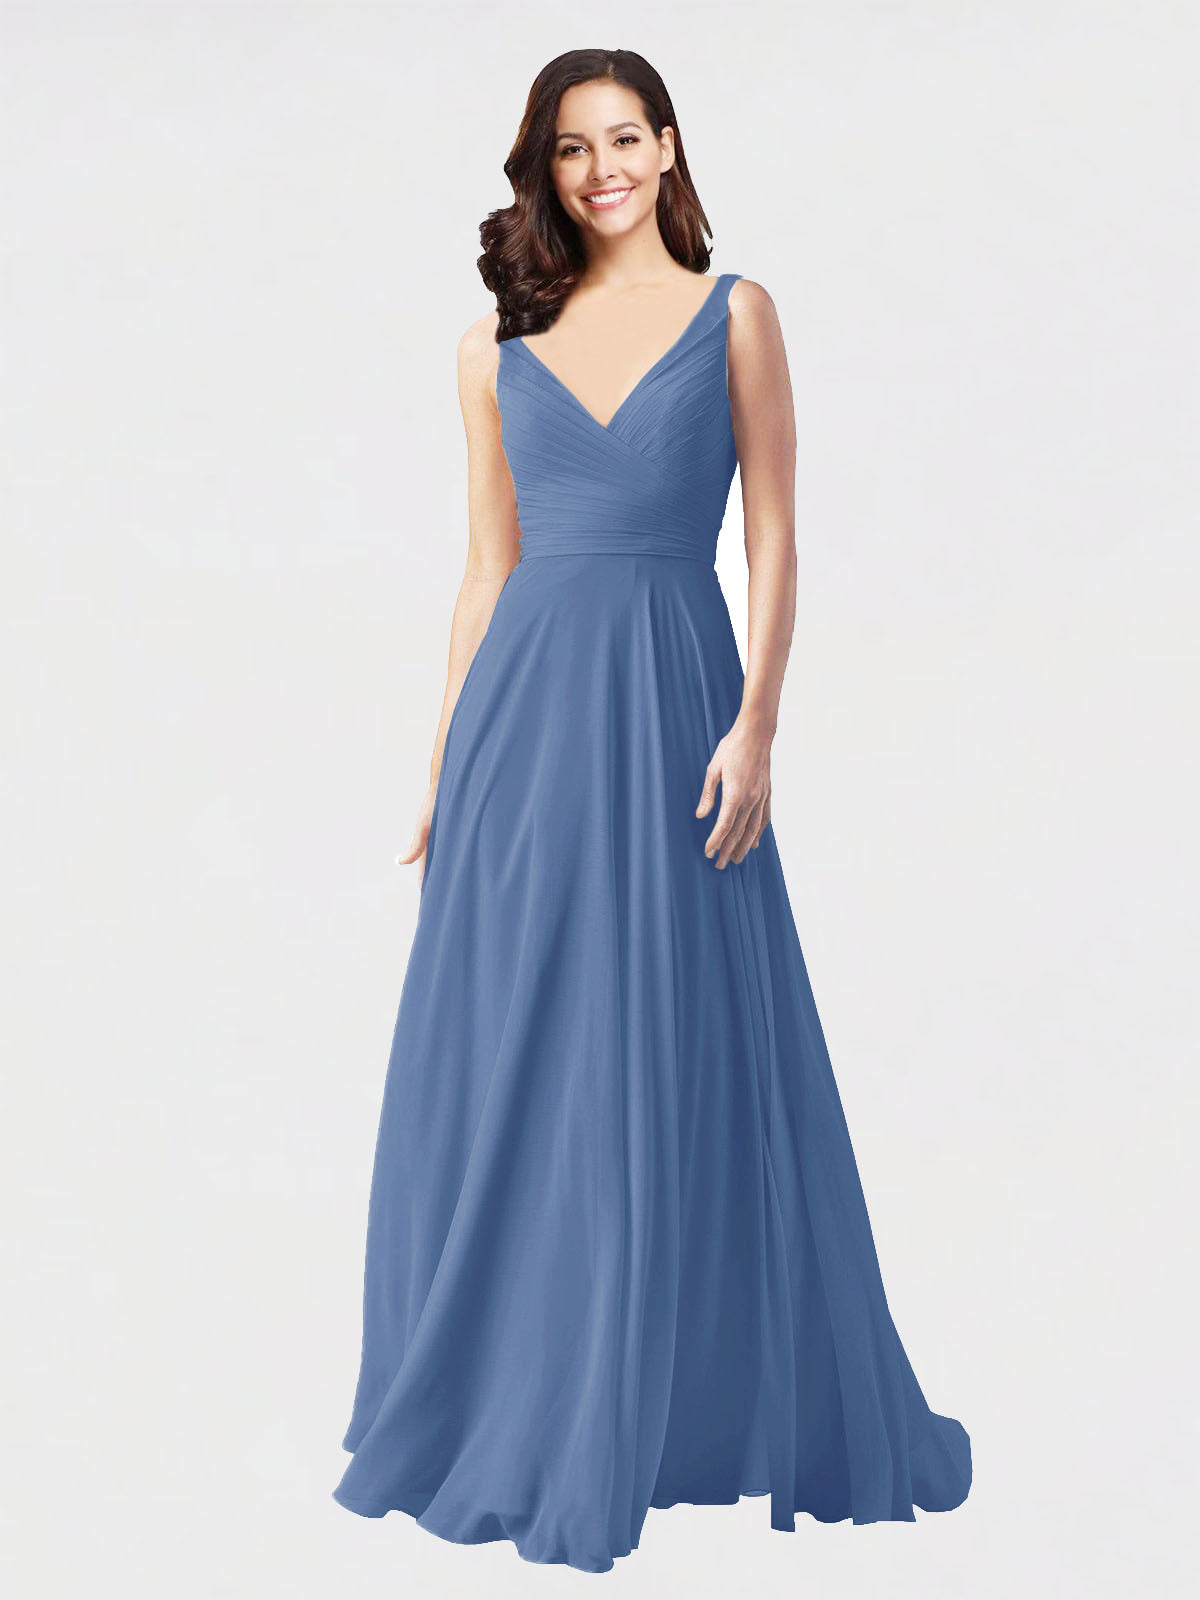 Long A-Line V-Neck Sleeveless Windsor Blue Chiffon Bridesmaid Dress Bernice